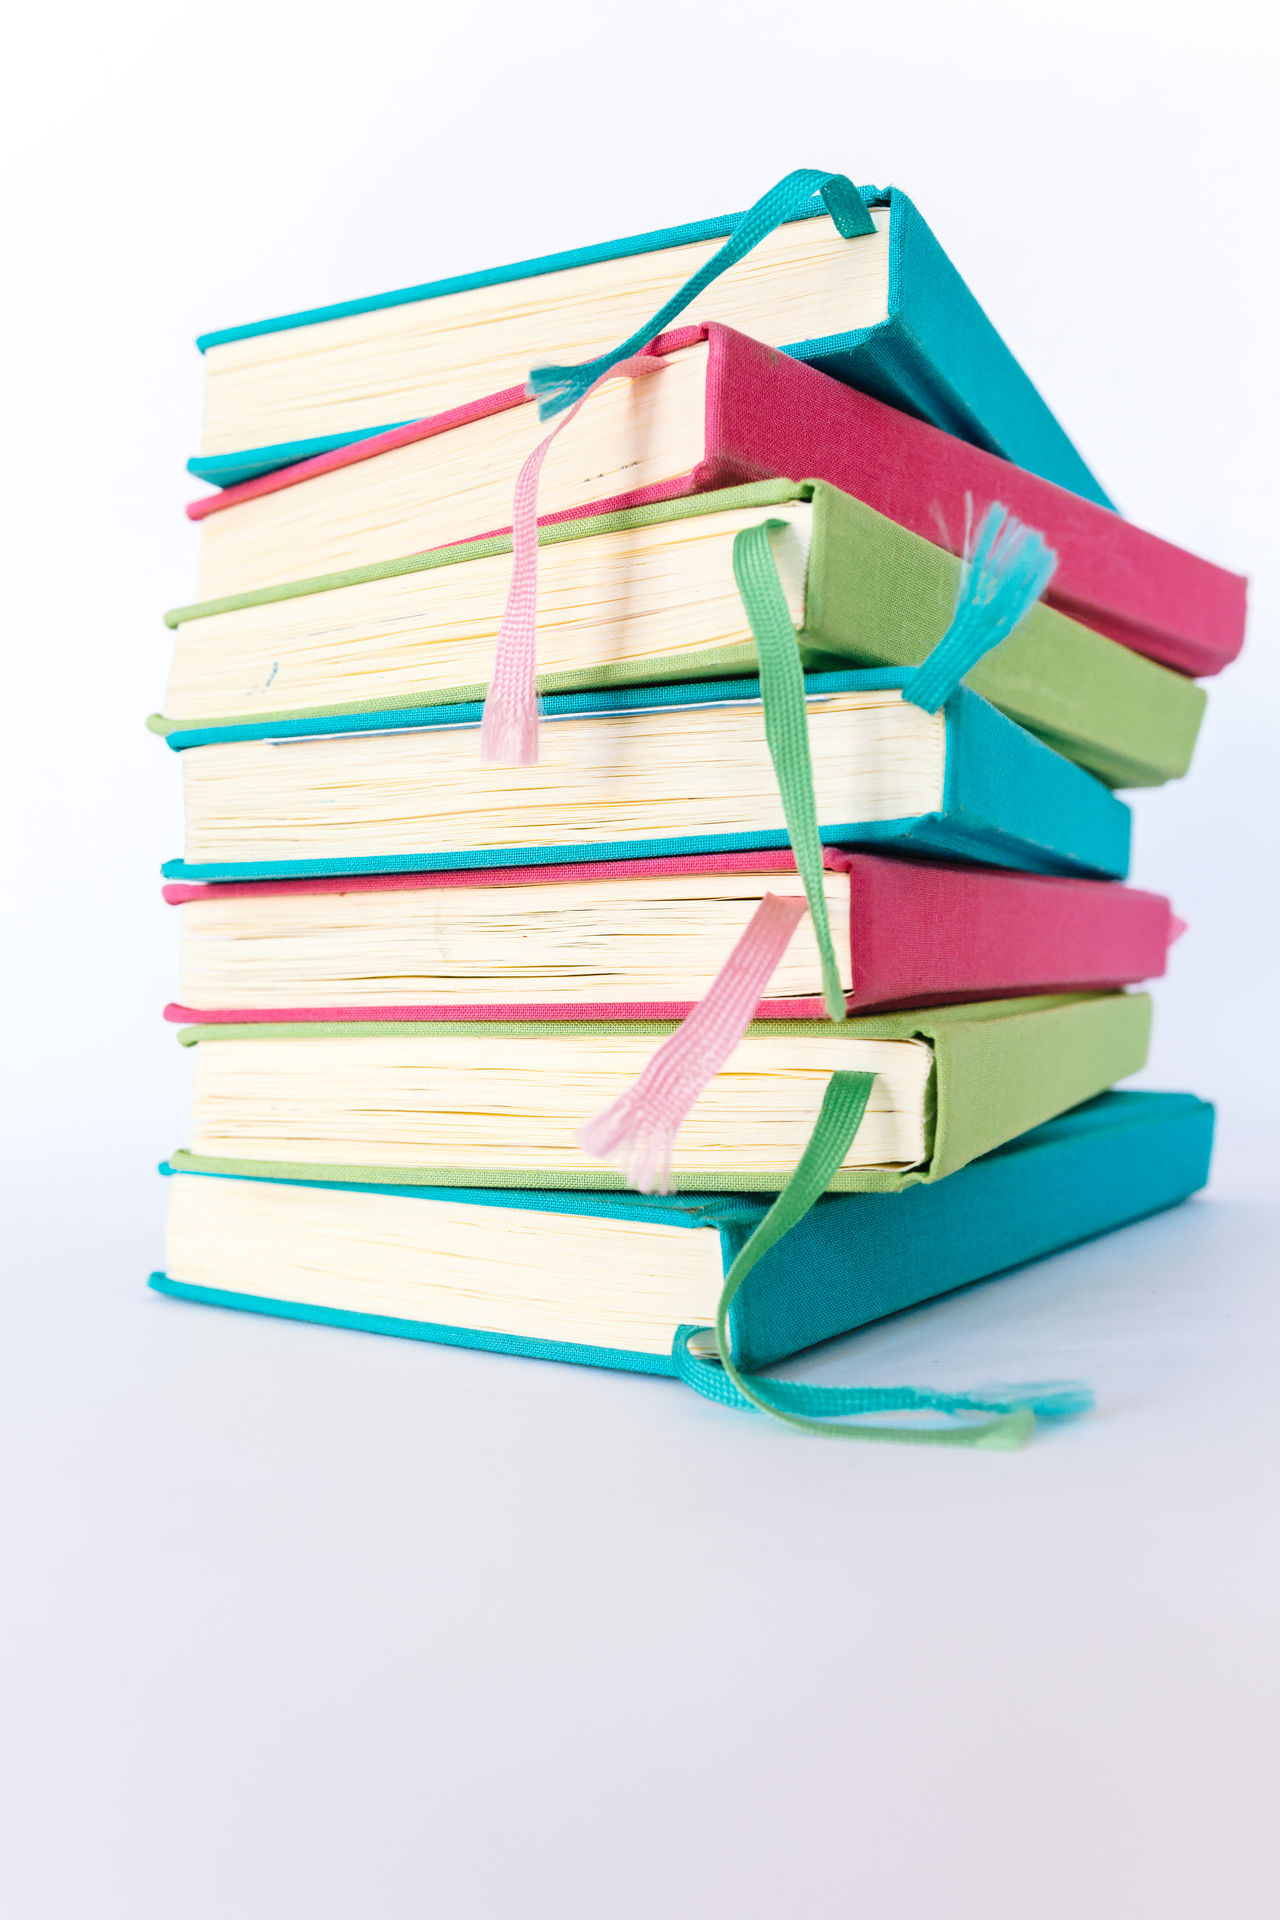 Colorful Books Blue Books Colorful Colors Cyan Education Educational Green Learning LearningEveryday Multi Colored No People Office Supply Paper Pink Reading Reading Books Reading Time Stack Study Hard Study Time Studying White Background